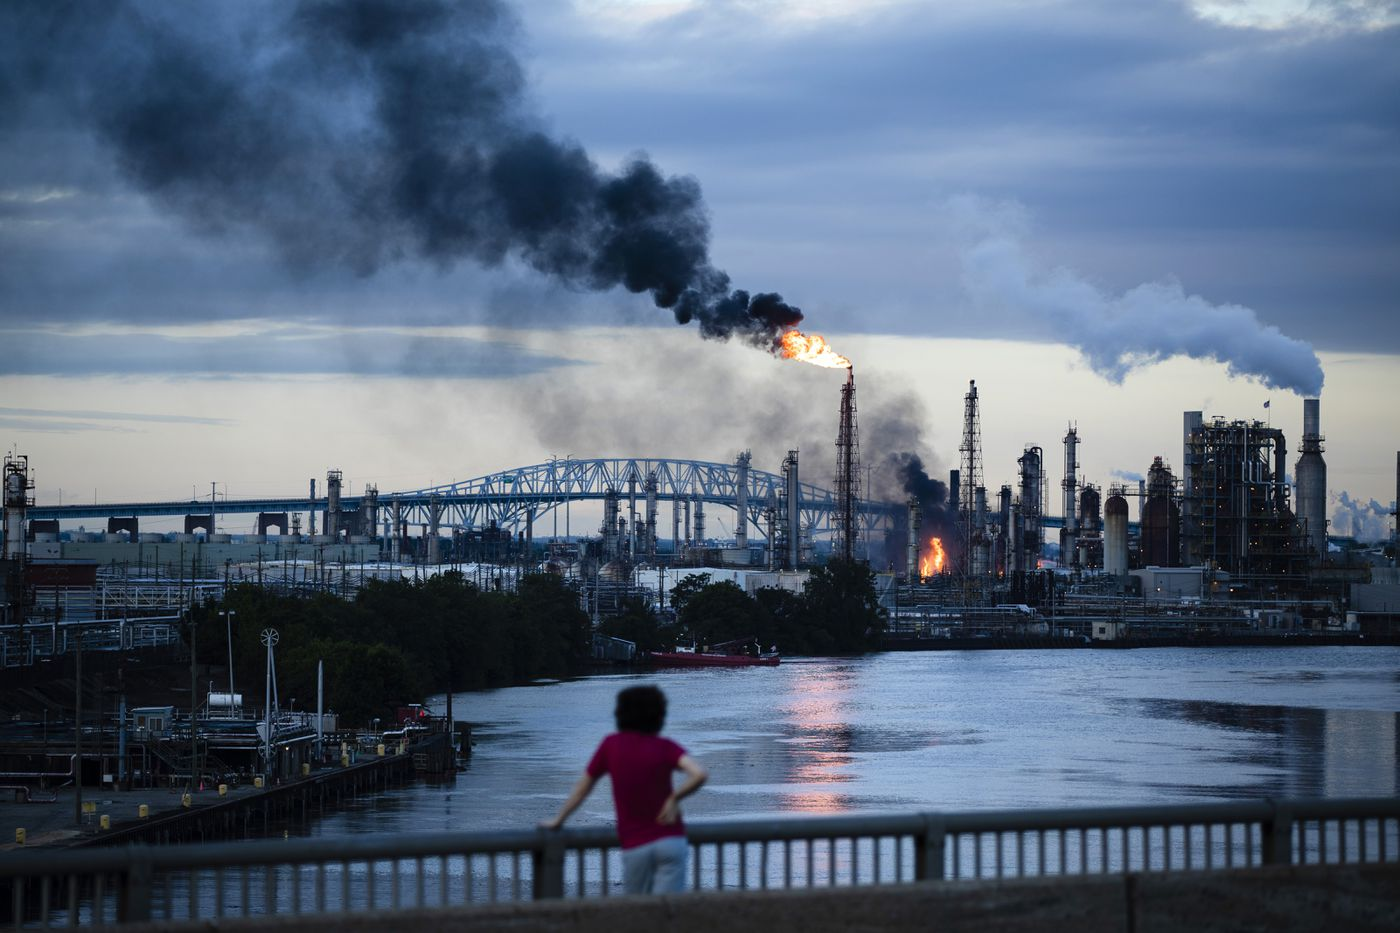 Flames and smoke emerge from the Philadelphia Energy Solutions Refining Complex in Philadelphia, Friday, June 21, 2019. Explosions and a blaze at the largest oil refinery on the East Coast shook homes before dawn Friday, though authorities reported only a few minor injuries and said the air was safe to breathe. (AP Photo/Matt Rourke)